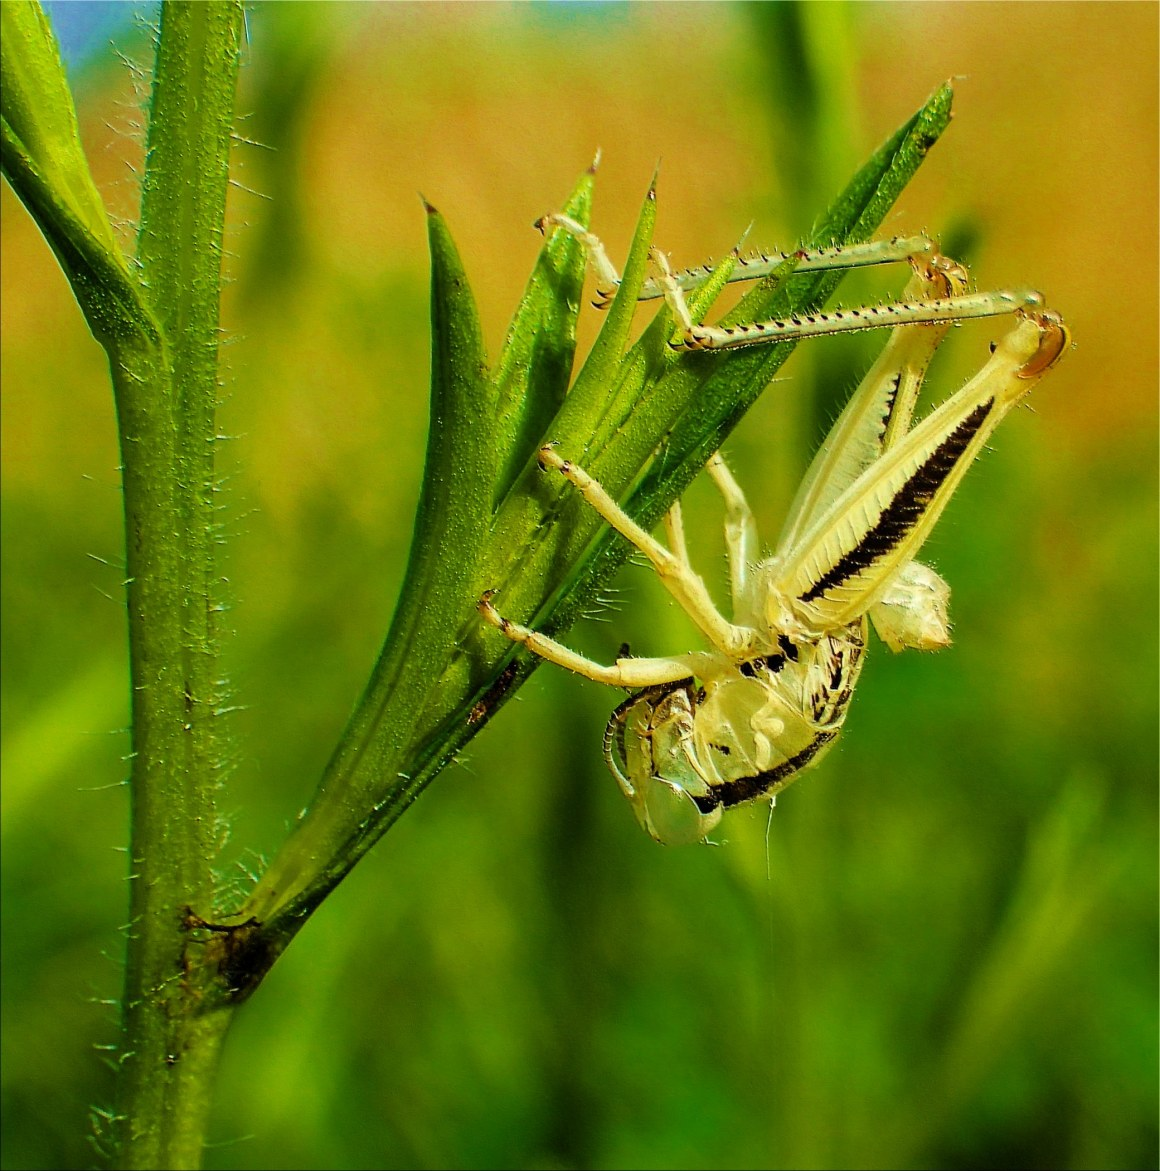 Empty Exoskeleton of a Grasshopper (1) Photo by Thomas Peace c. 2015